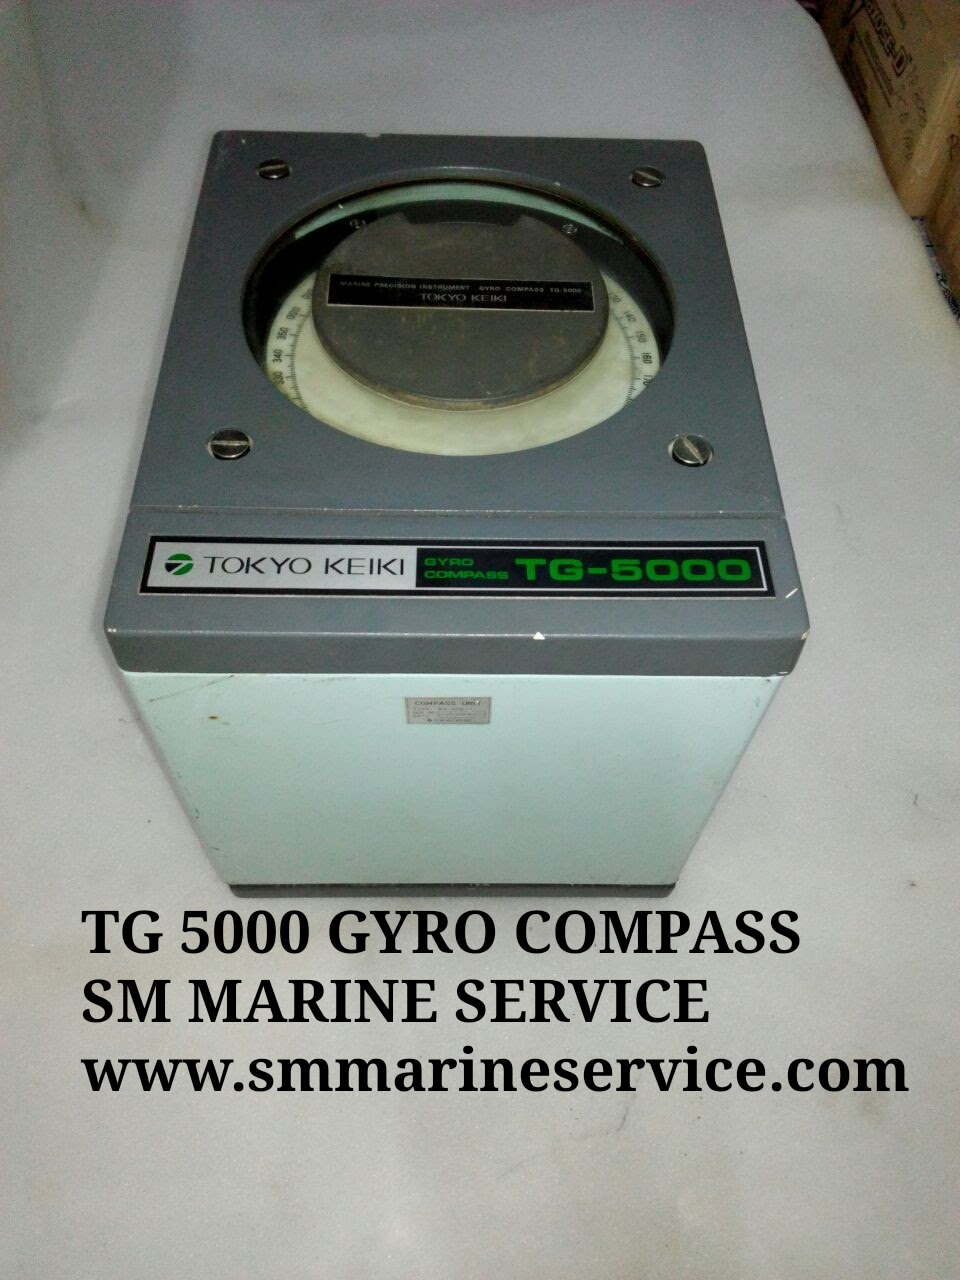 uploads/PhotoImages/TG-5000_GYRO_COMPASS.jpeg